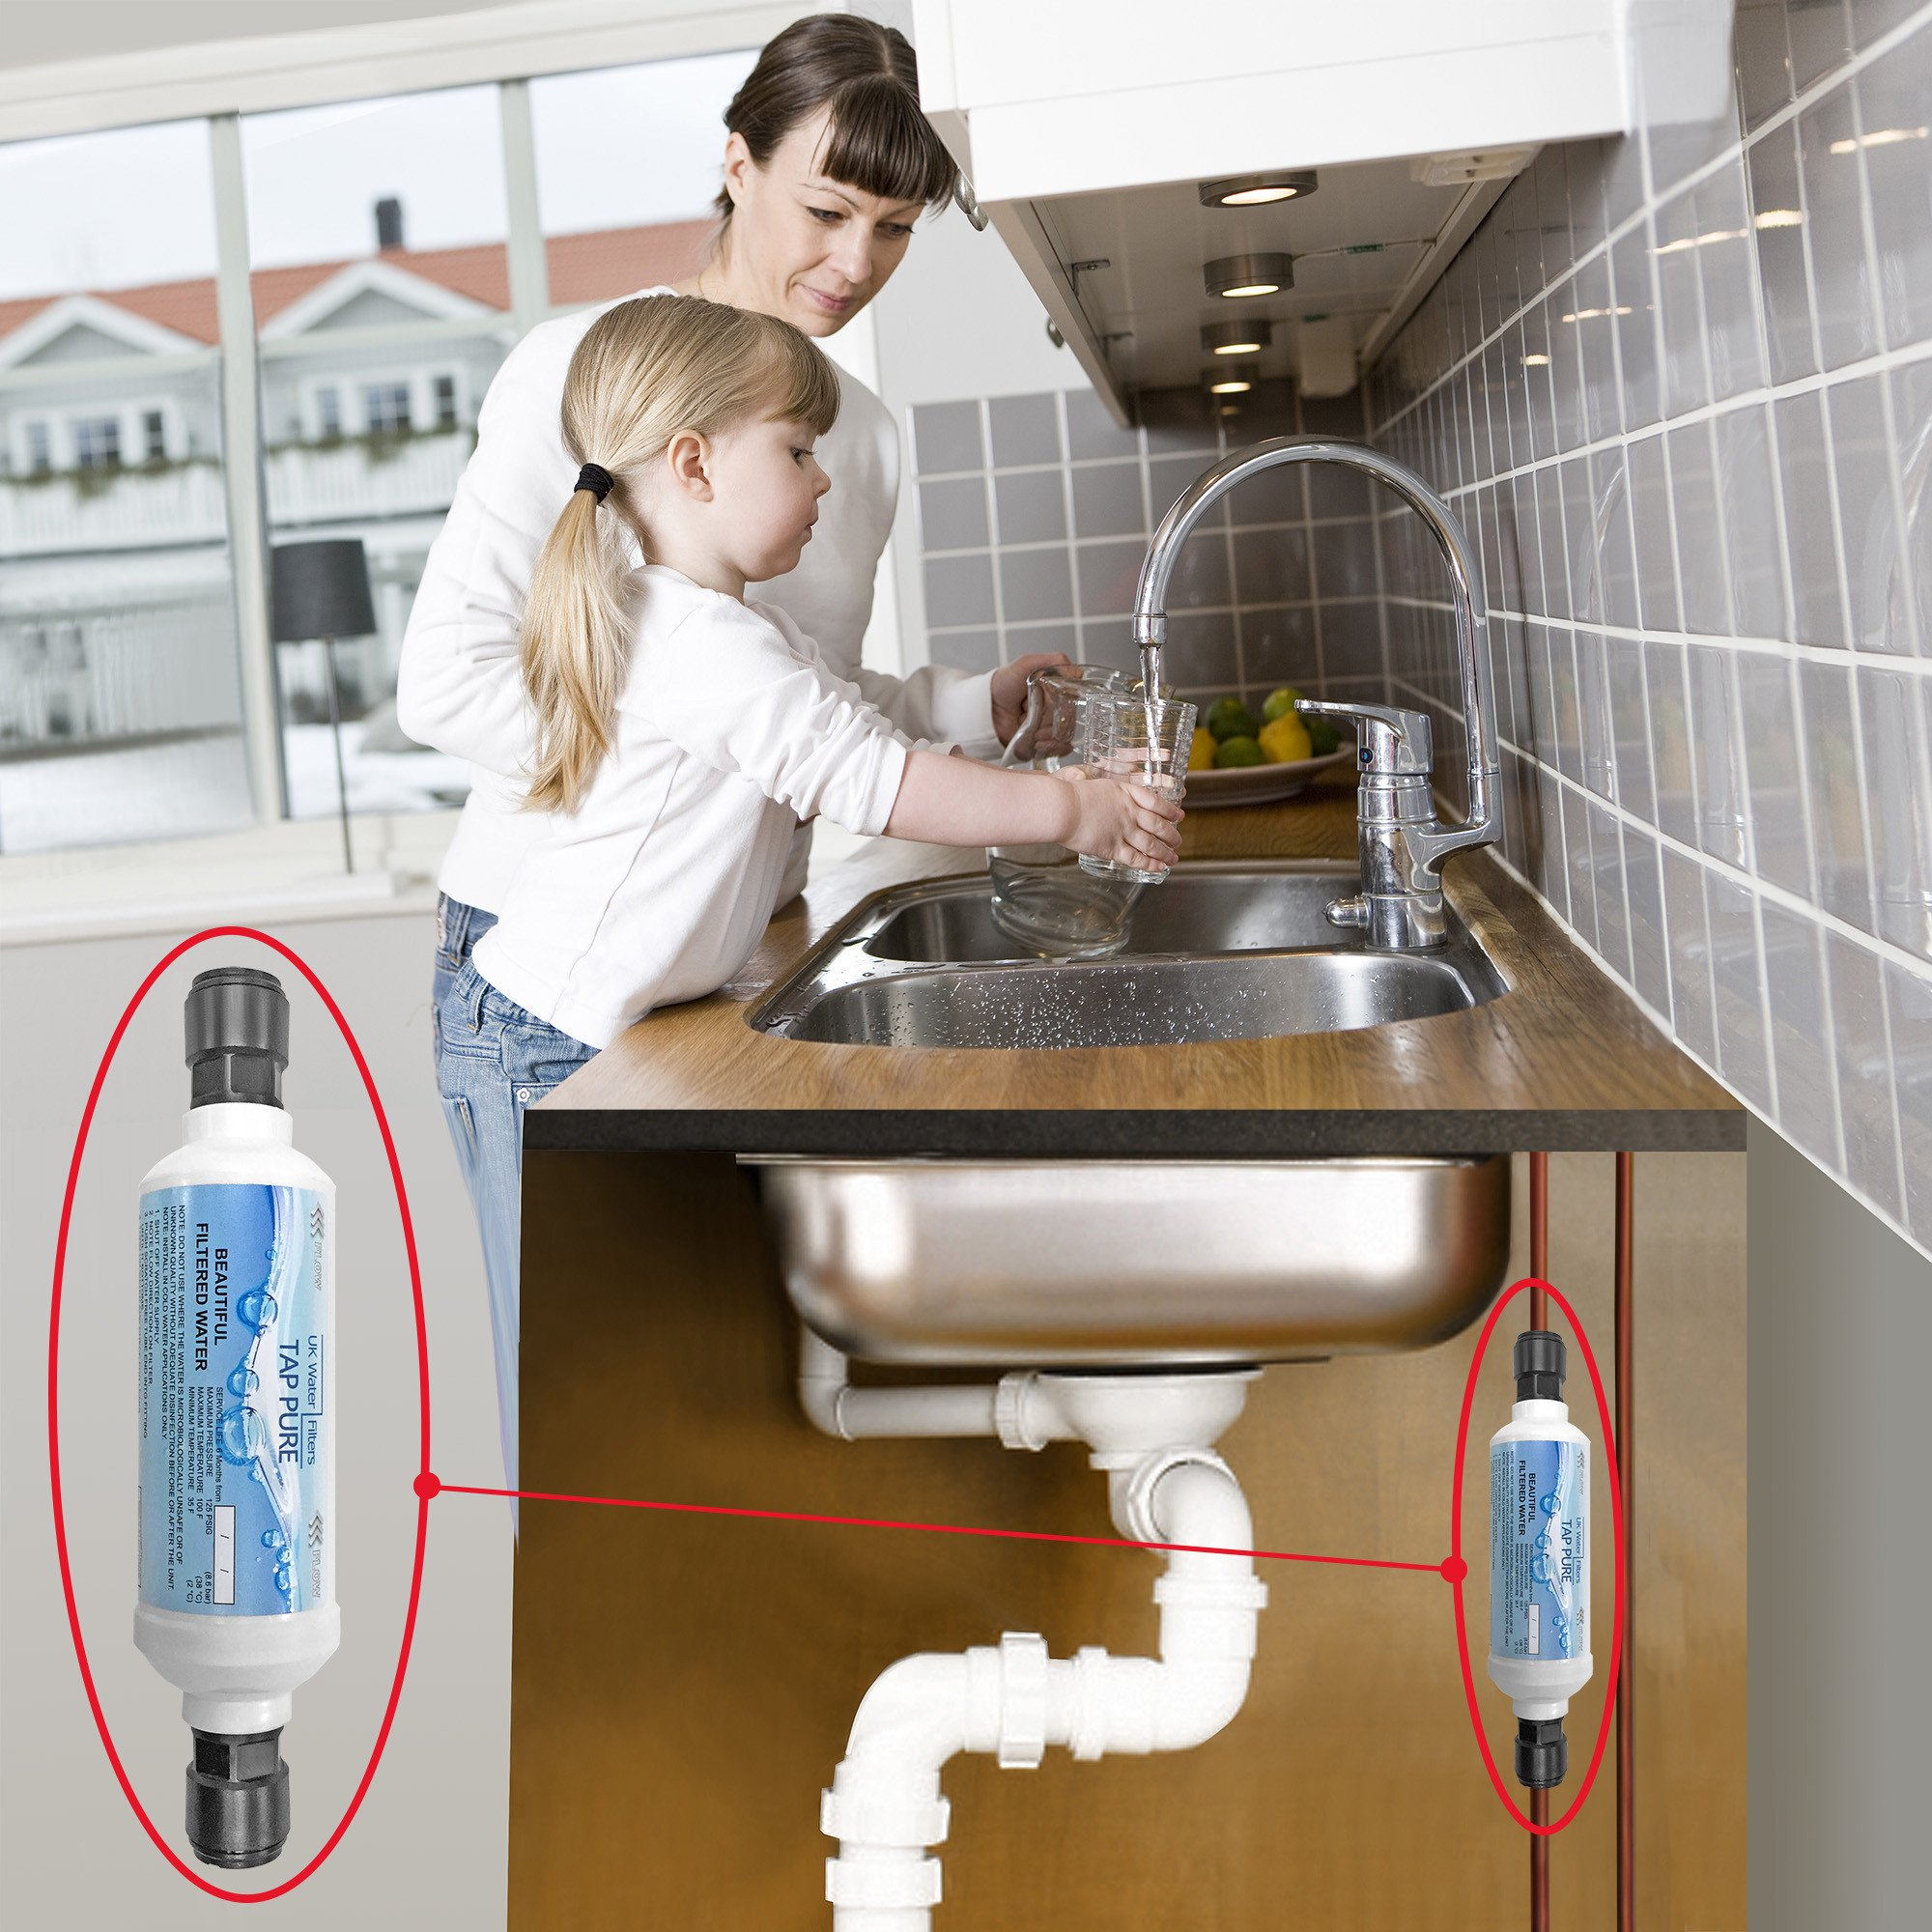 Keep Own Taps Undersink Water Filter Existing Normal Standard Tap